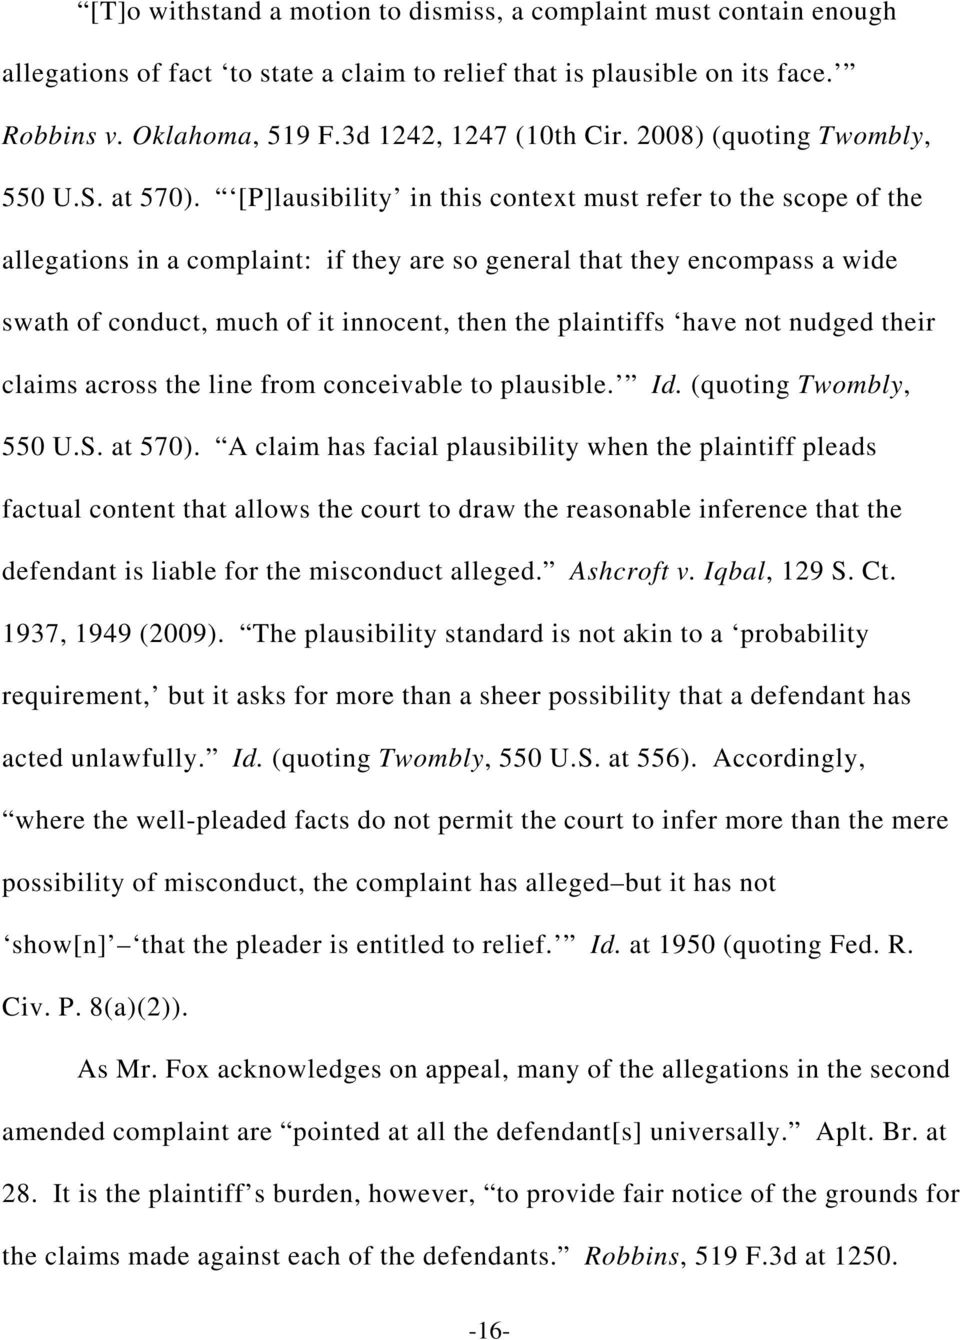 [P]lausibility in this context must refer to the scope of the allegations in a complaint: if they are so general that they encompass a wide swath of conduct, much of it innocent, then the plaintiffs